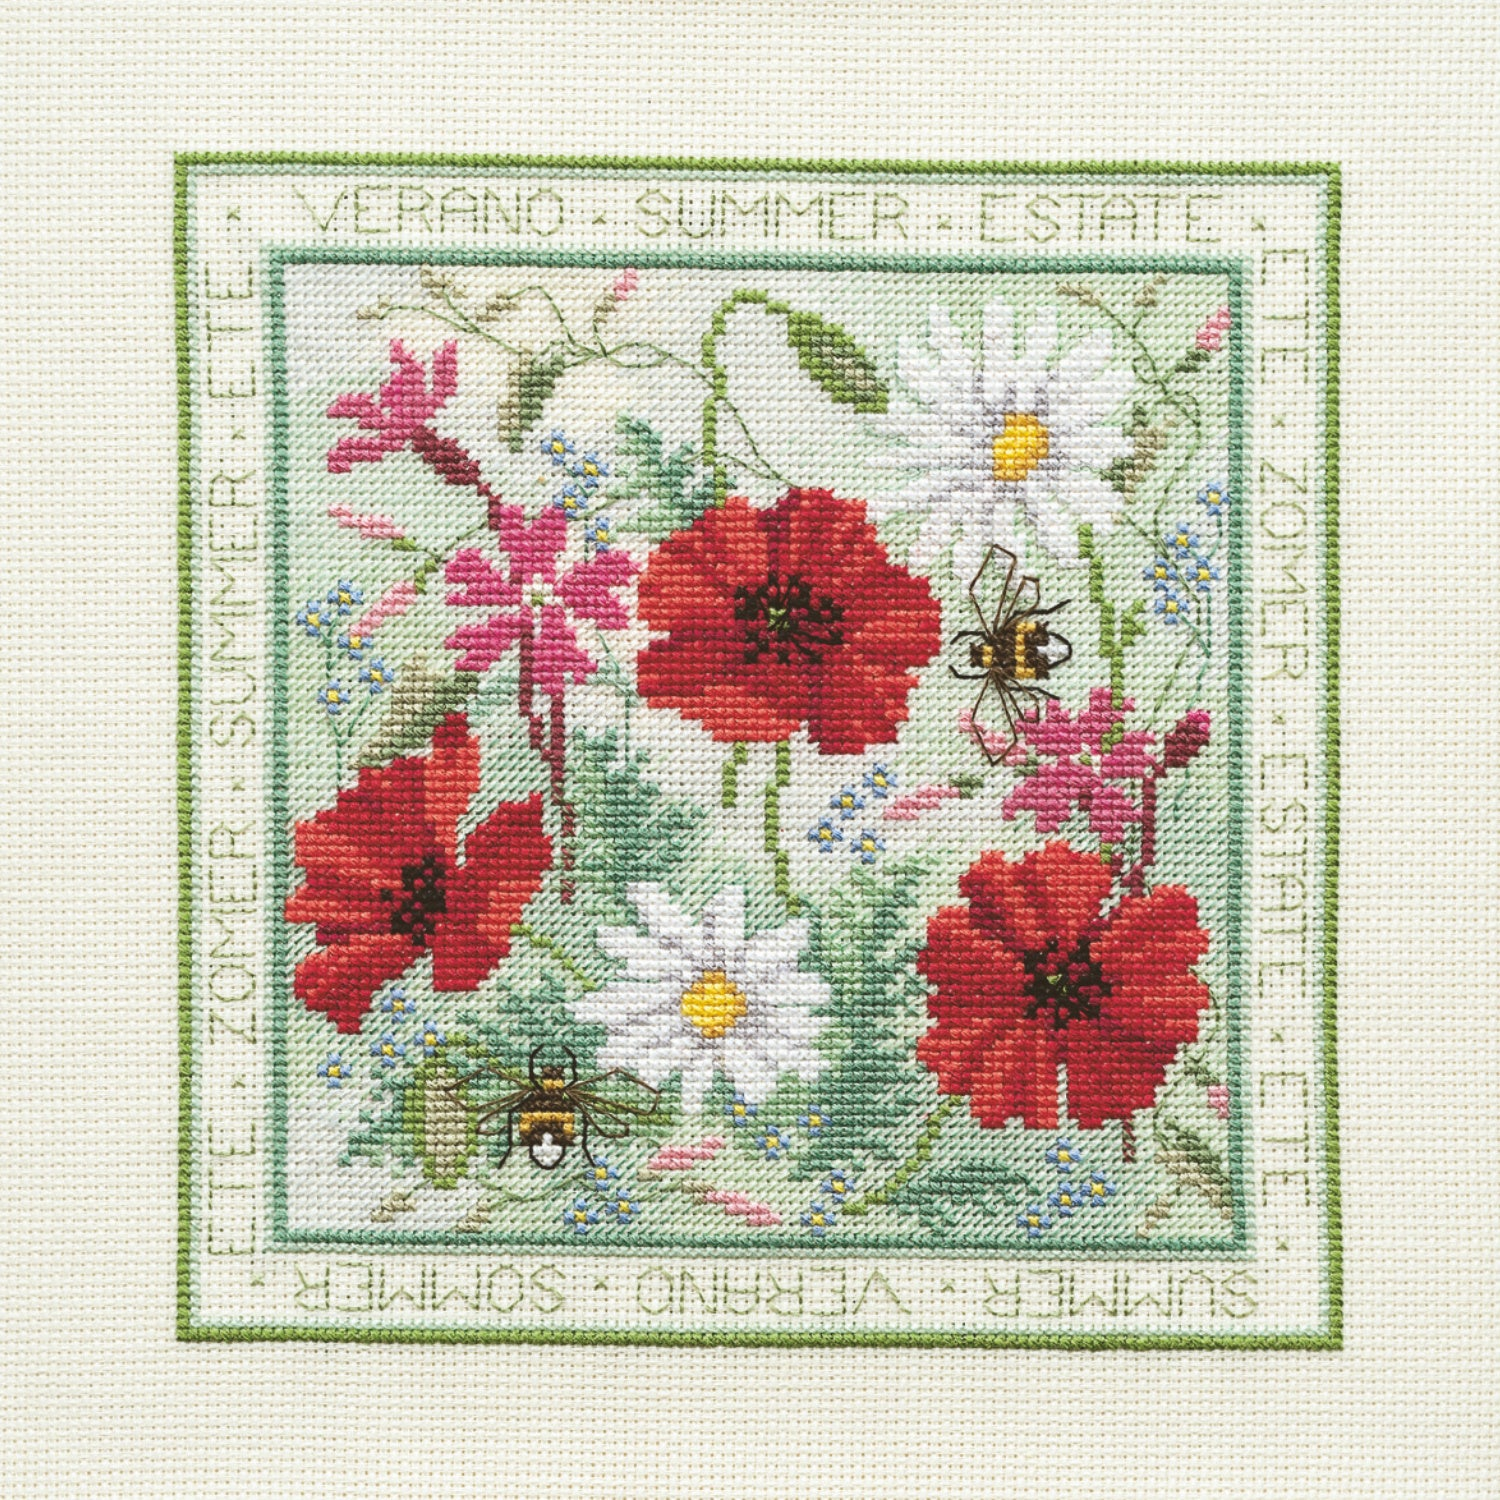 Four Seasons - Summer<br />Counted Cross Stitch Kit